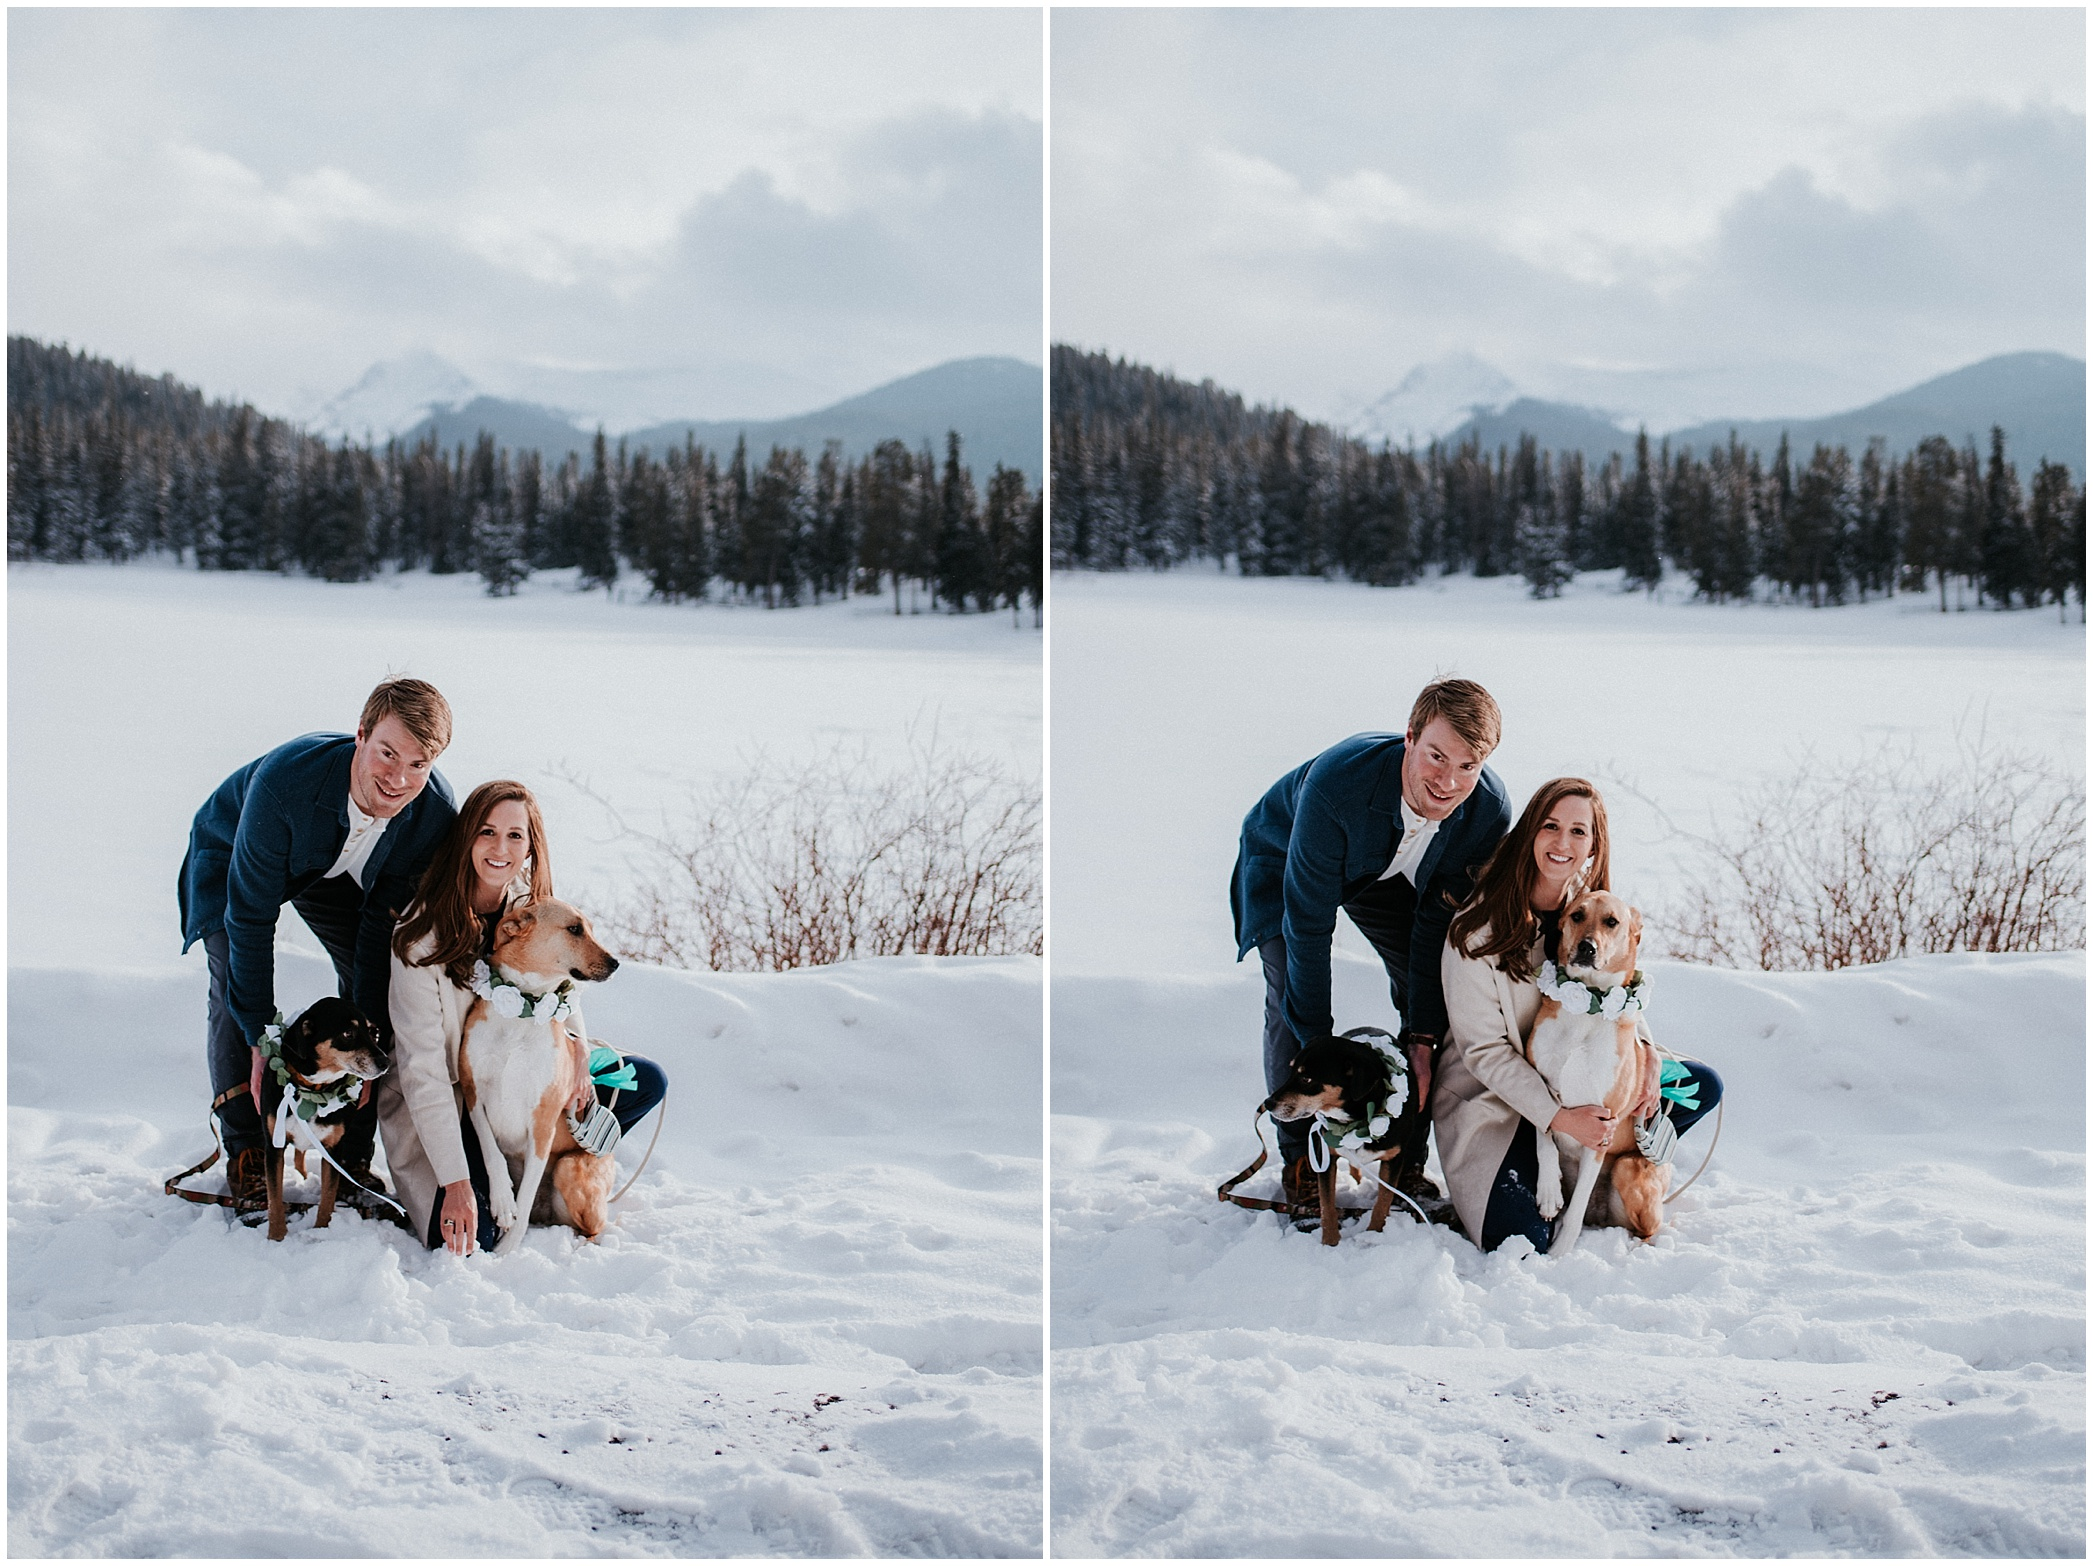 Echo Lake Engagement Session, Denver Engagement, Colorado Engagement Photos, Denver Engagement Photos, Colorado Engagement Photographer, Denver Engagement Photographer, Colorado Videographer, Denver Videographer, Mountain Engagement Photos, Engagement photo outfit ideas, Forest Engagement session, brunette bride, winter engagement, winter wedding, small wedding, forest photos denver, mountain view engagement colorado, romantic engagement session, engagement poses, dog engagement photos, Echo Lake,